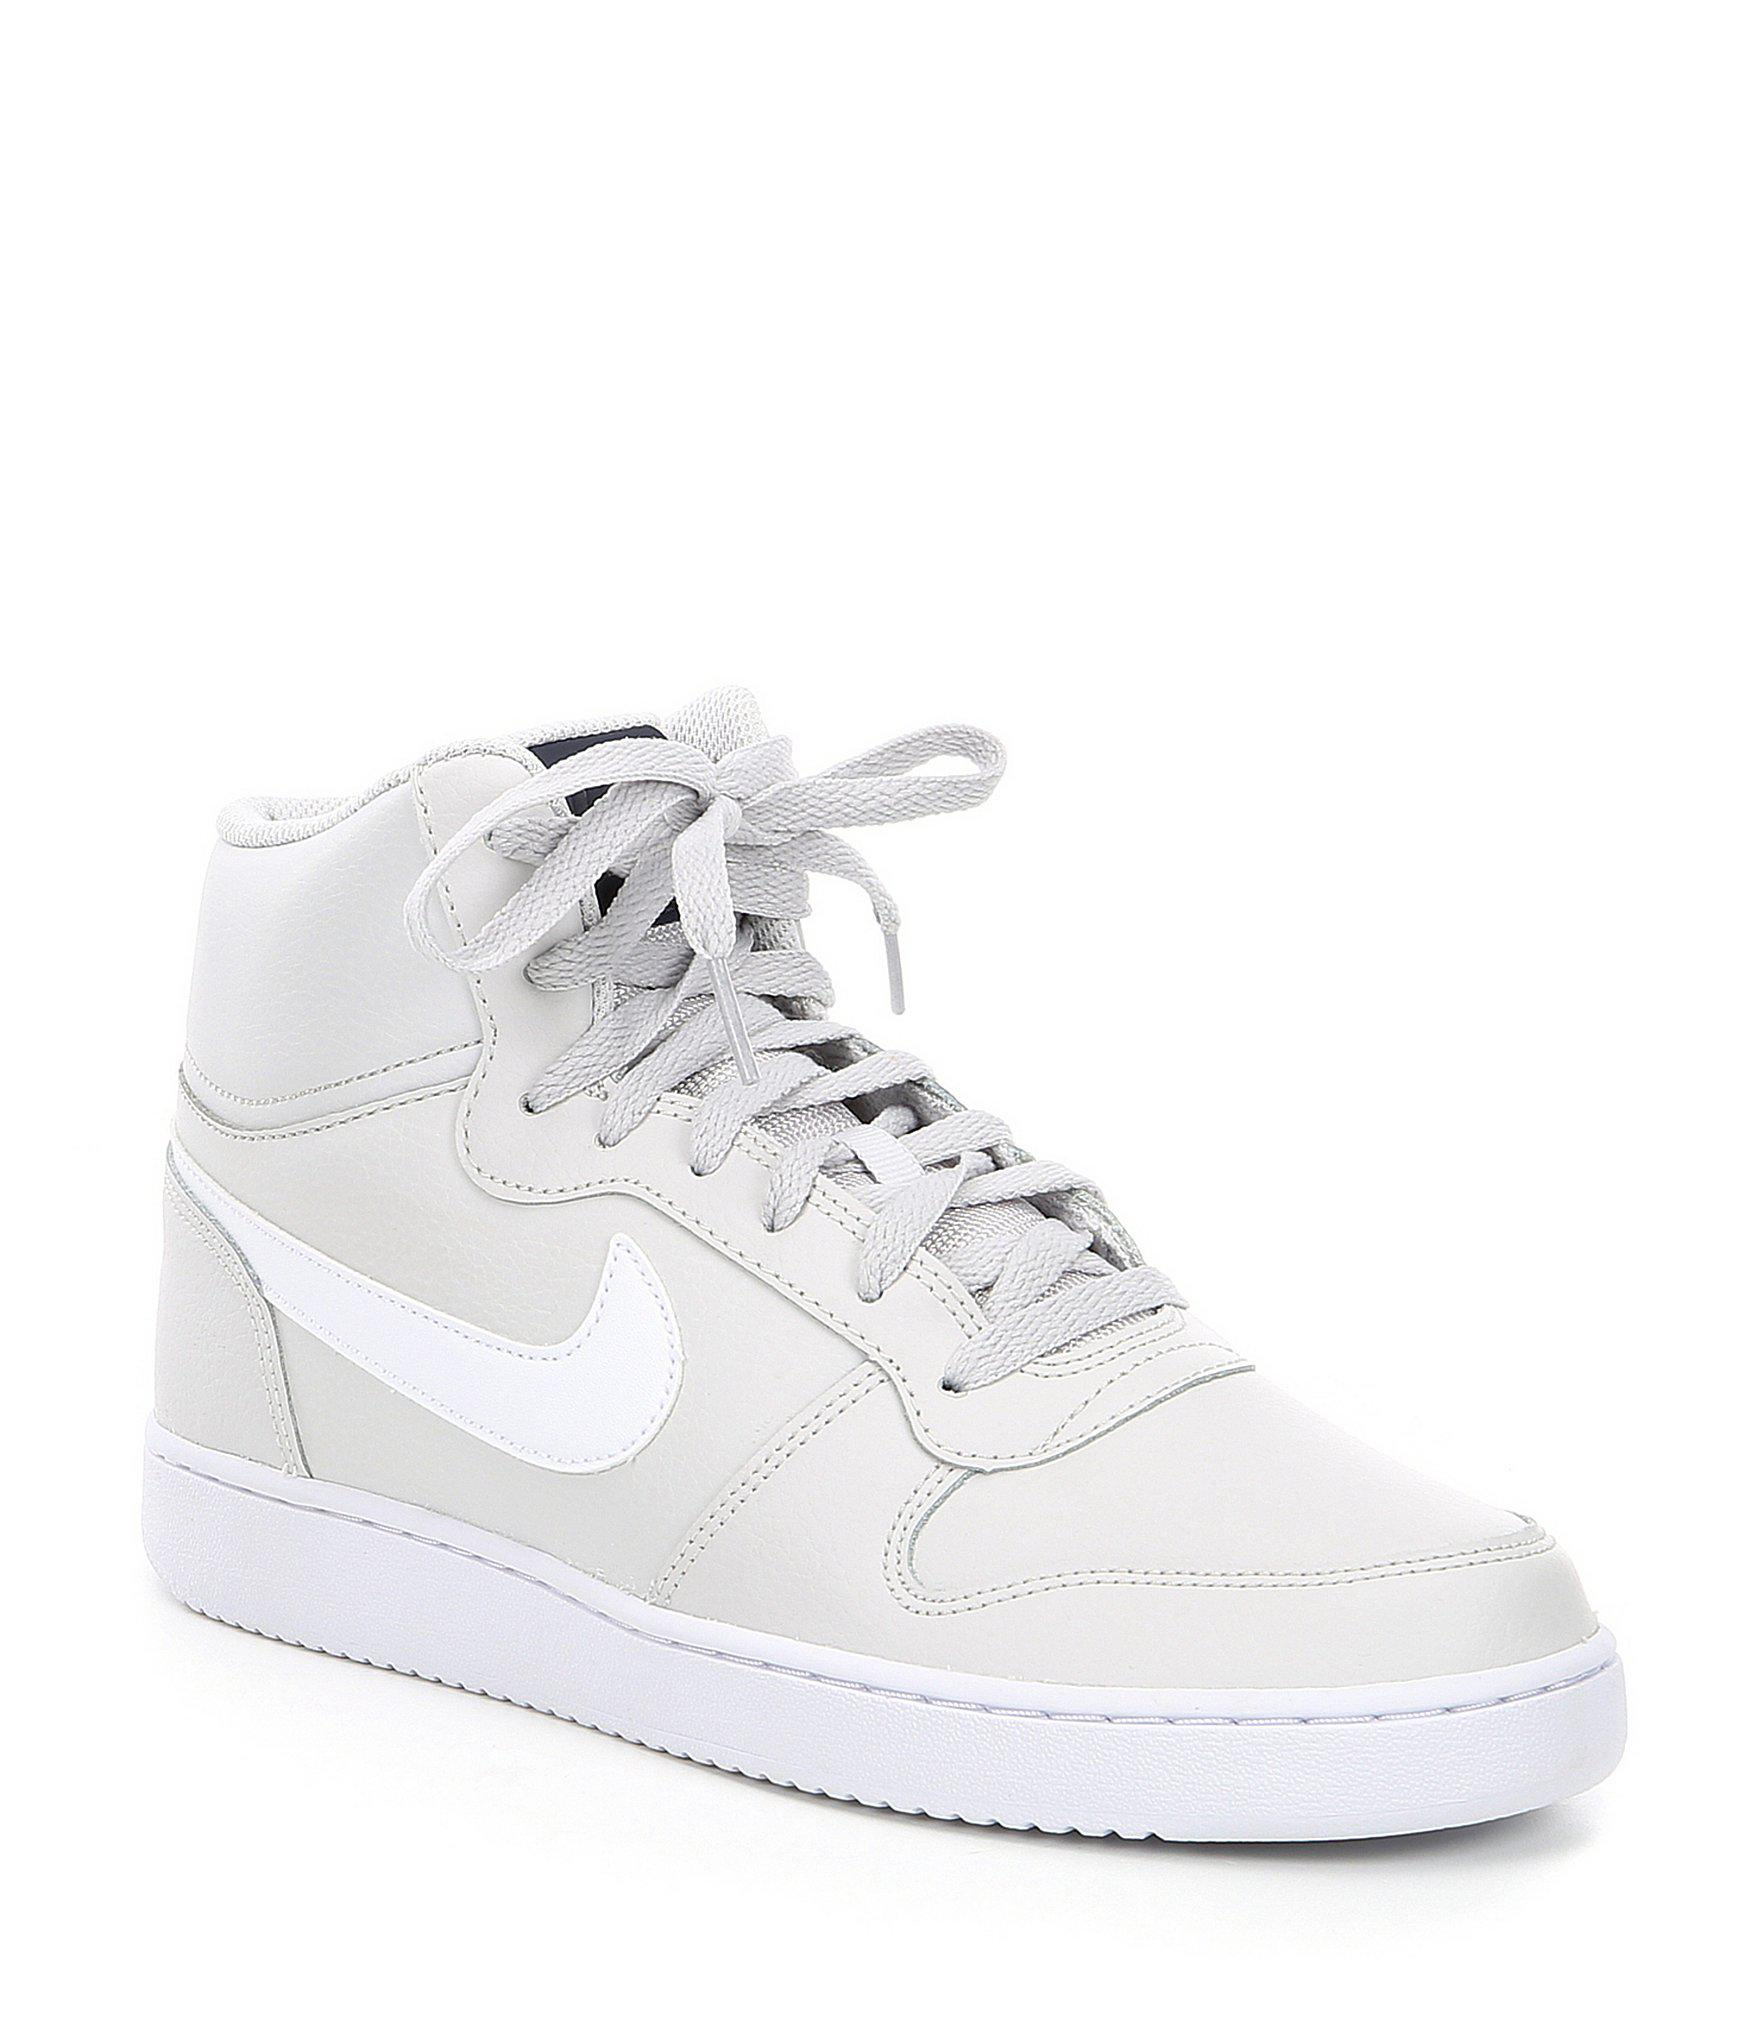 d33ea3413172e0 Gallery Gallery. Men u0027s casual shoes sneakers AUG1 AUG2 for the Nike  2018 EBERNON MID ...